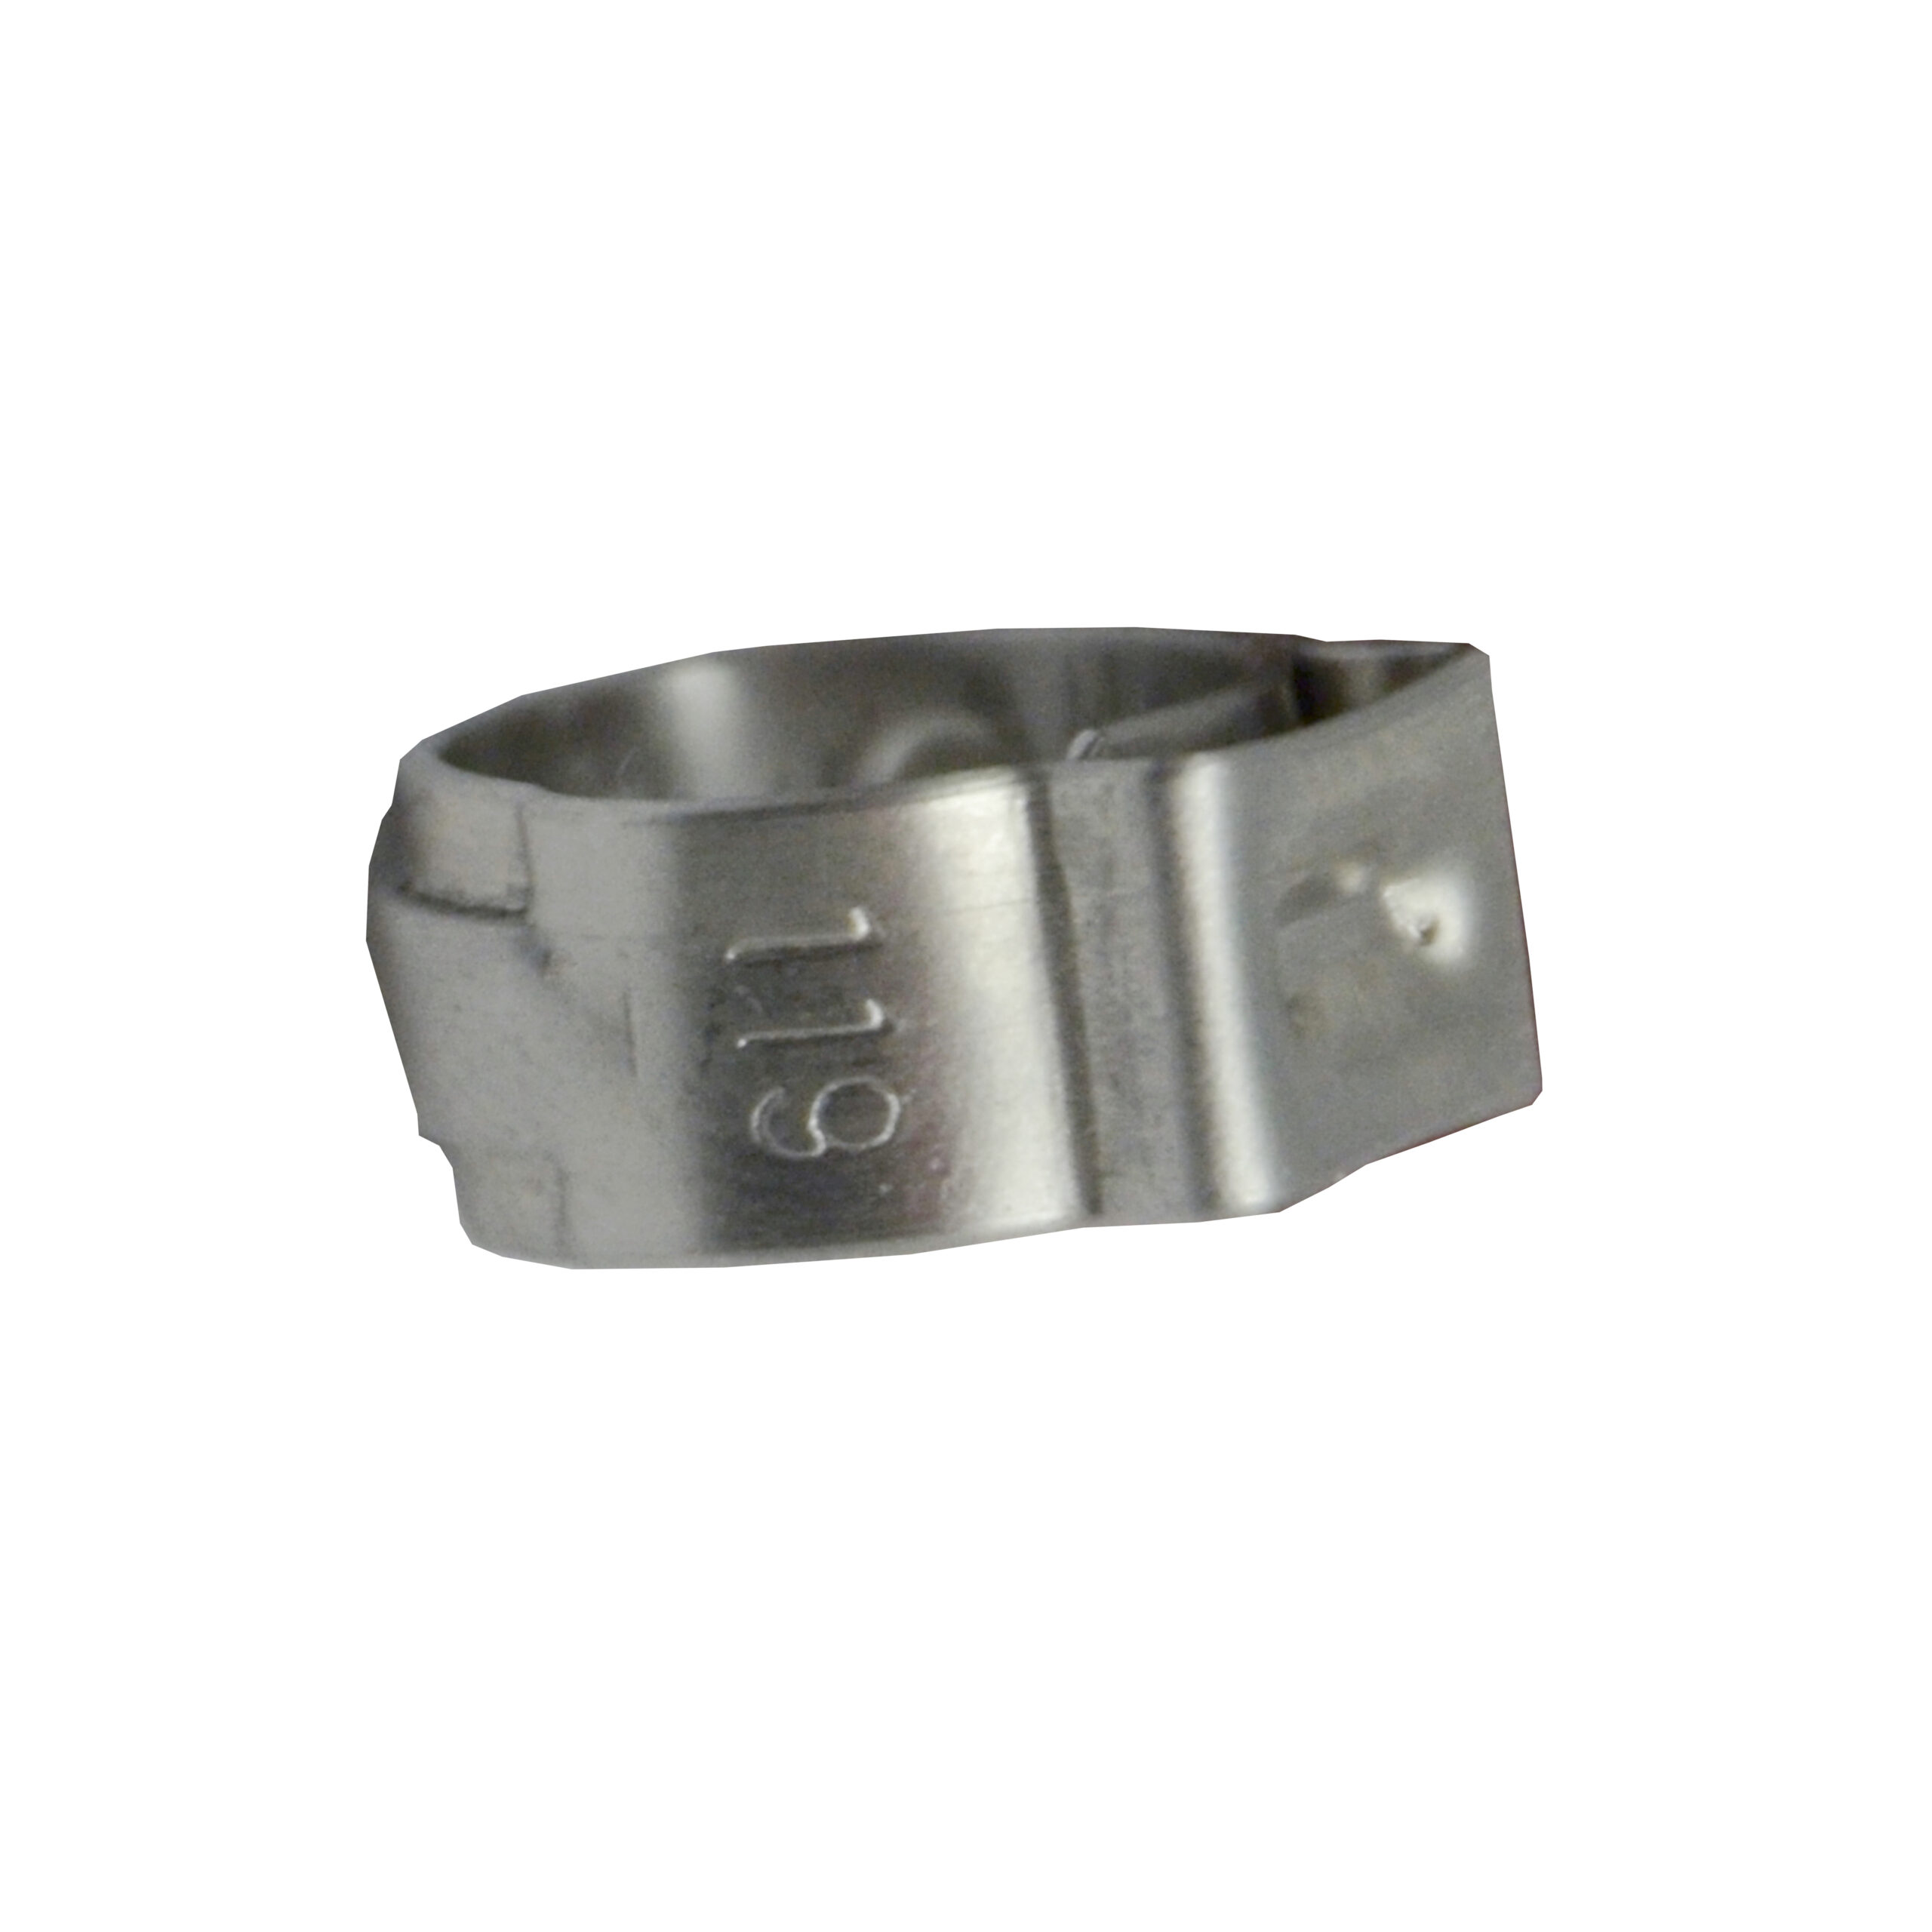 Stainless Steel Stepless Clamp 11.9mm